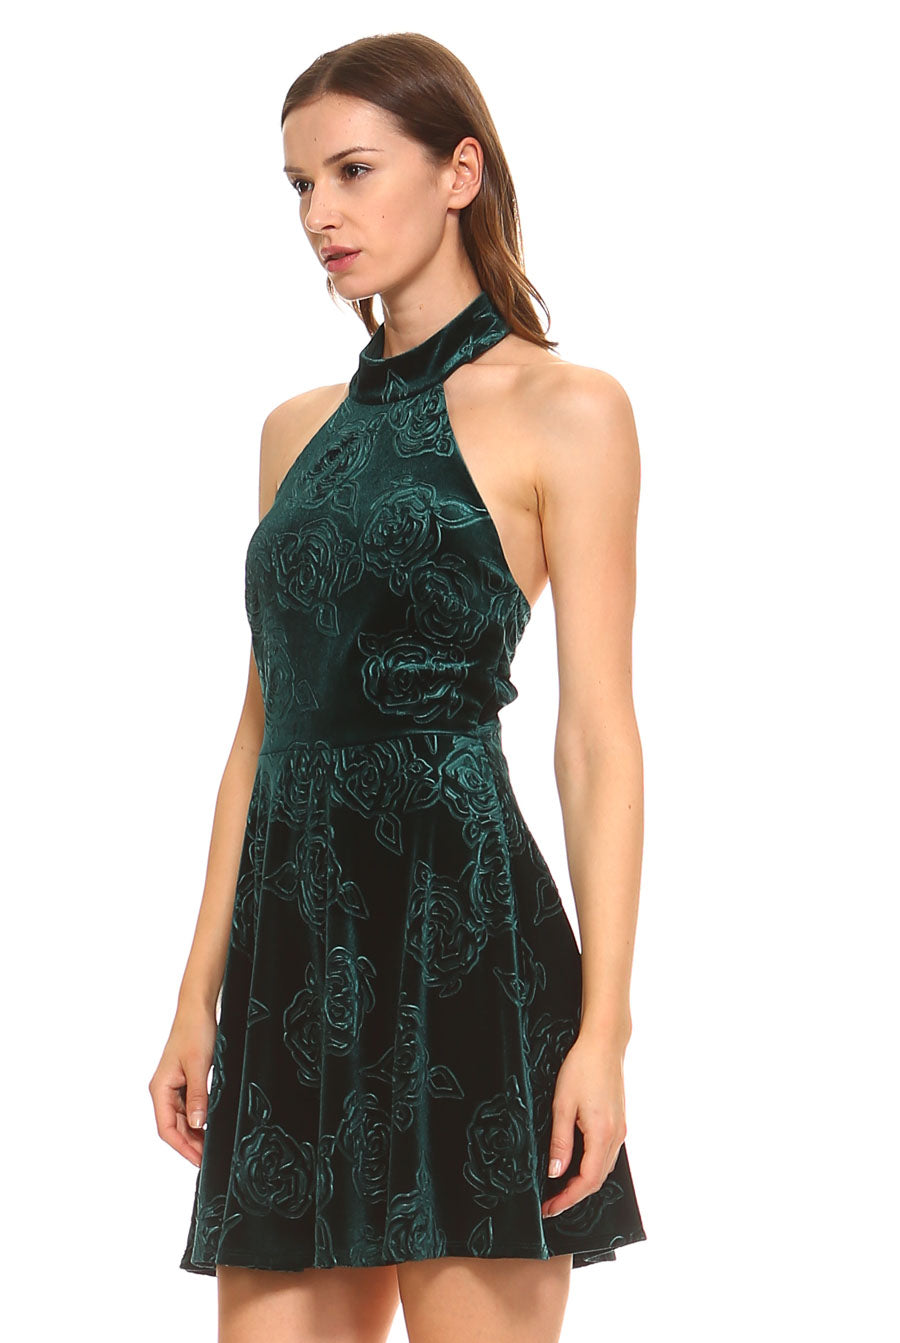 Teeze Me | Sleeveless Halter Choker Neck Floral Embossed Velvet Party Dress  | Emerald